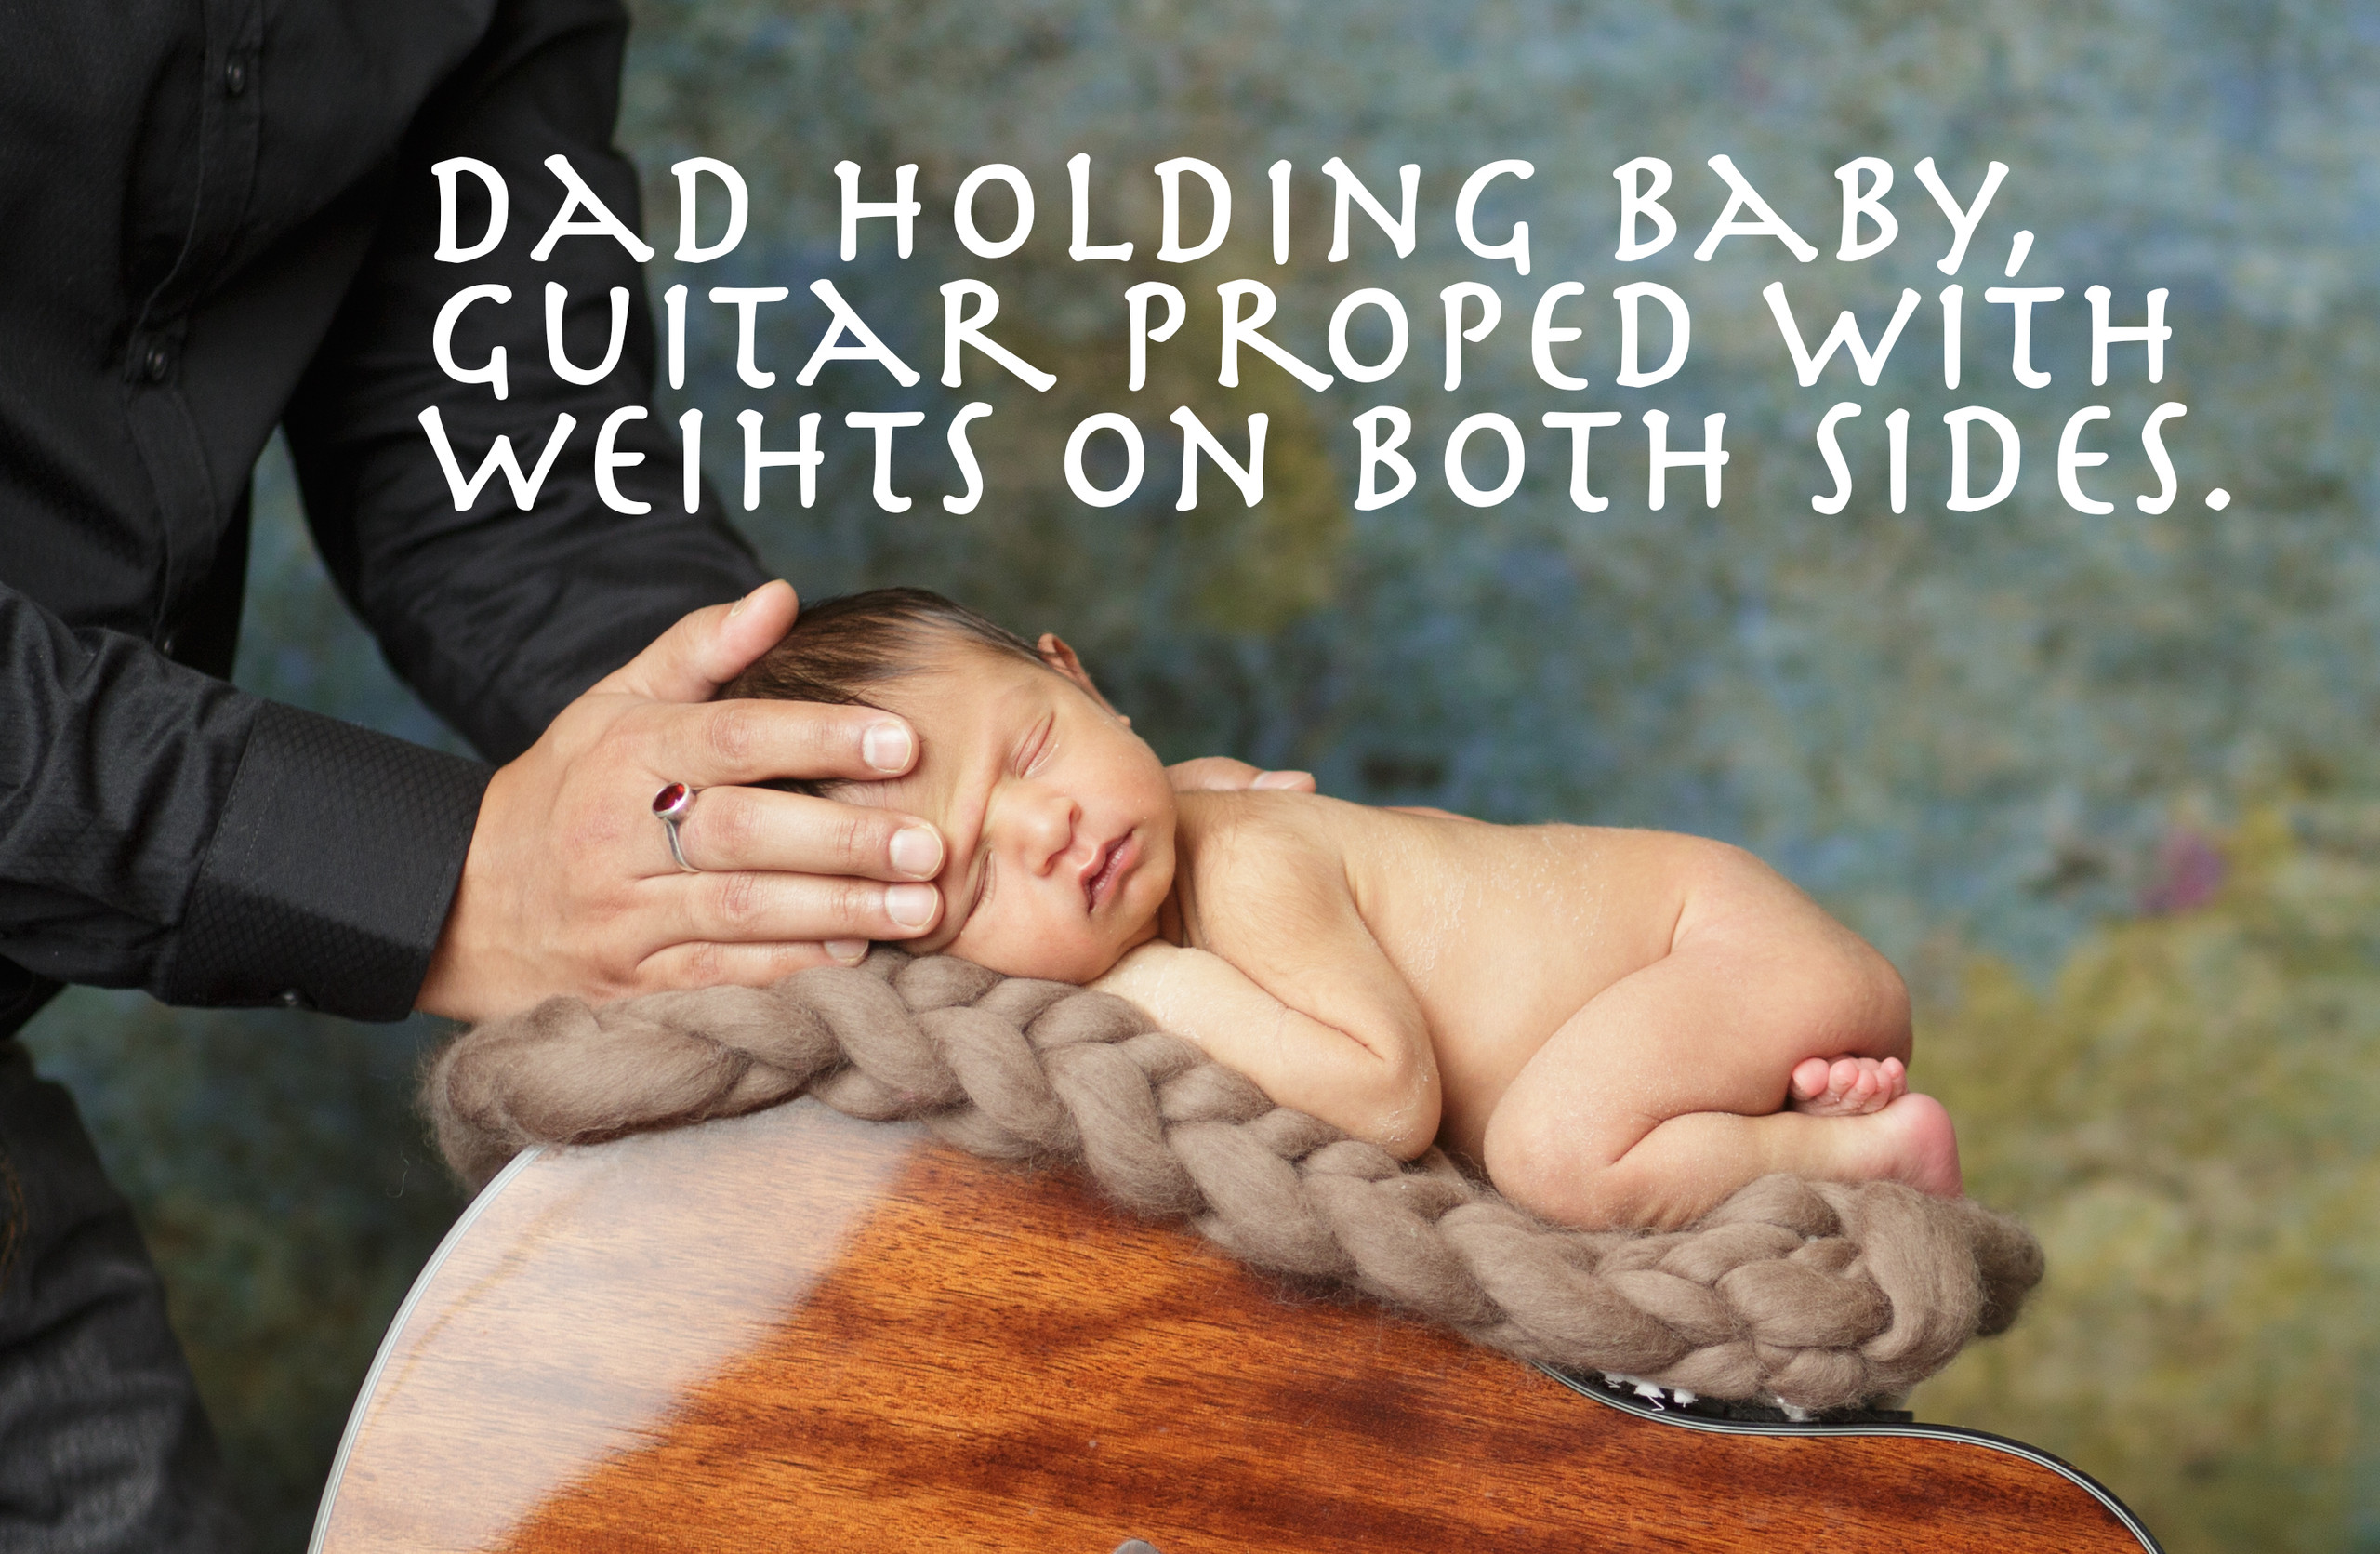 Newborn photographer, baby photography, infant photography, newborn  photography tutorial, guitar, baby on guitar, dad,